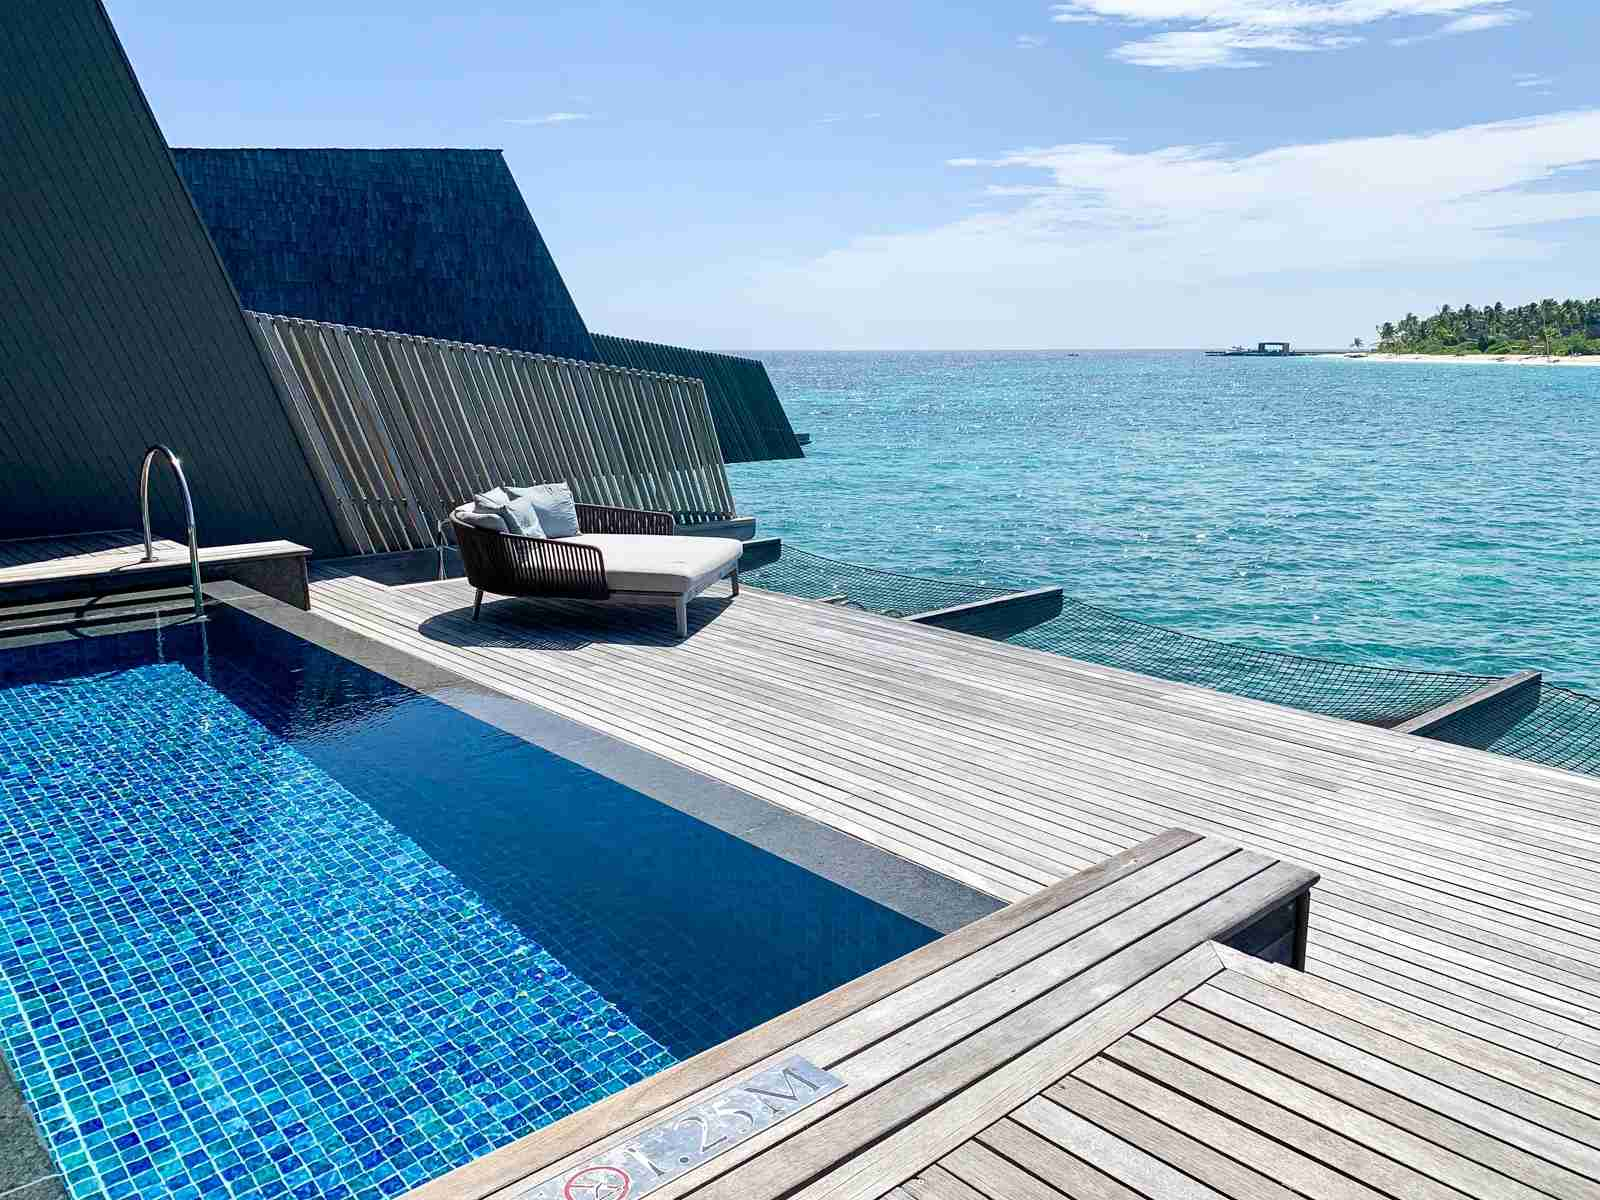 St. Regis Maldives. Photo by the author